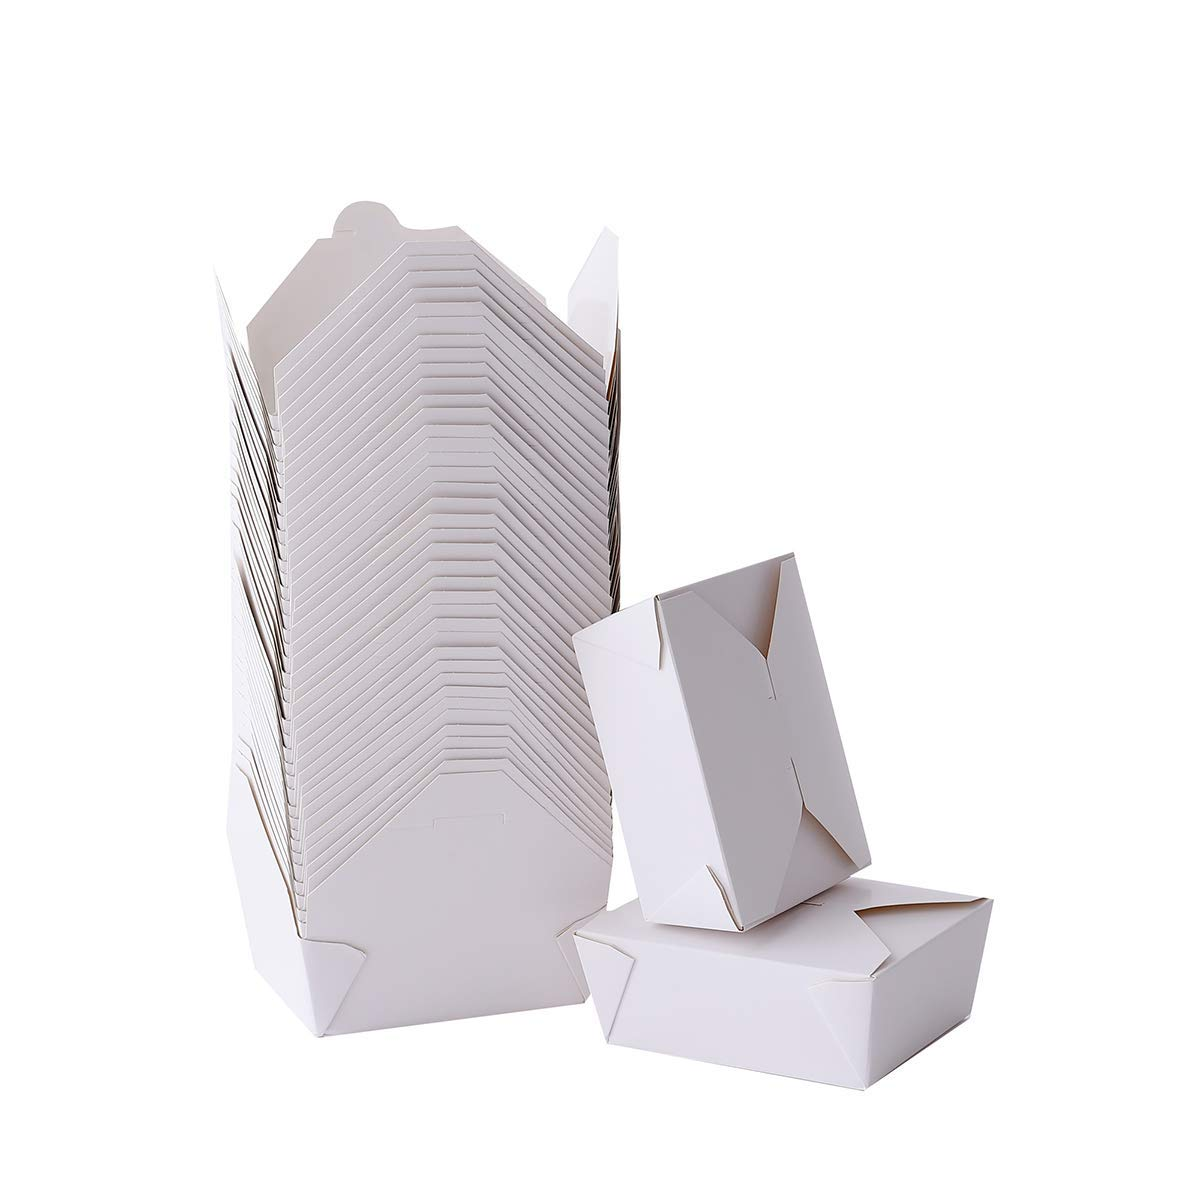 Take Out Boxes 45 Oz White Chinese Take Out Containers 40 Pack Microwaveable Folding Natural Food Box Meal Prep Containers for Food Ideal Leak and Grease Resistant for Restaurants, Weddings